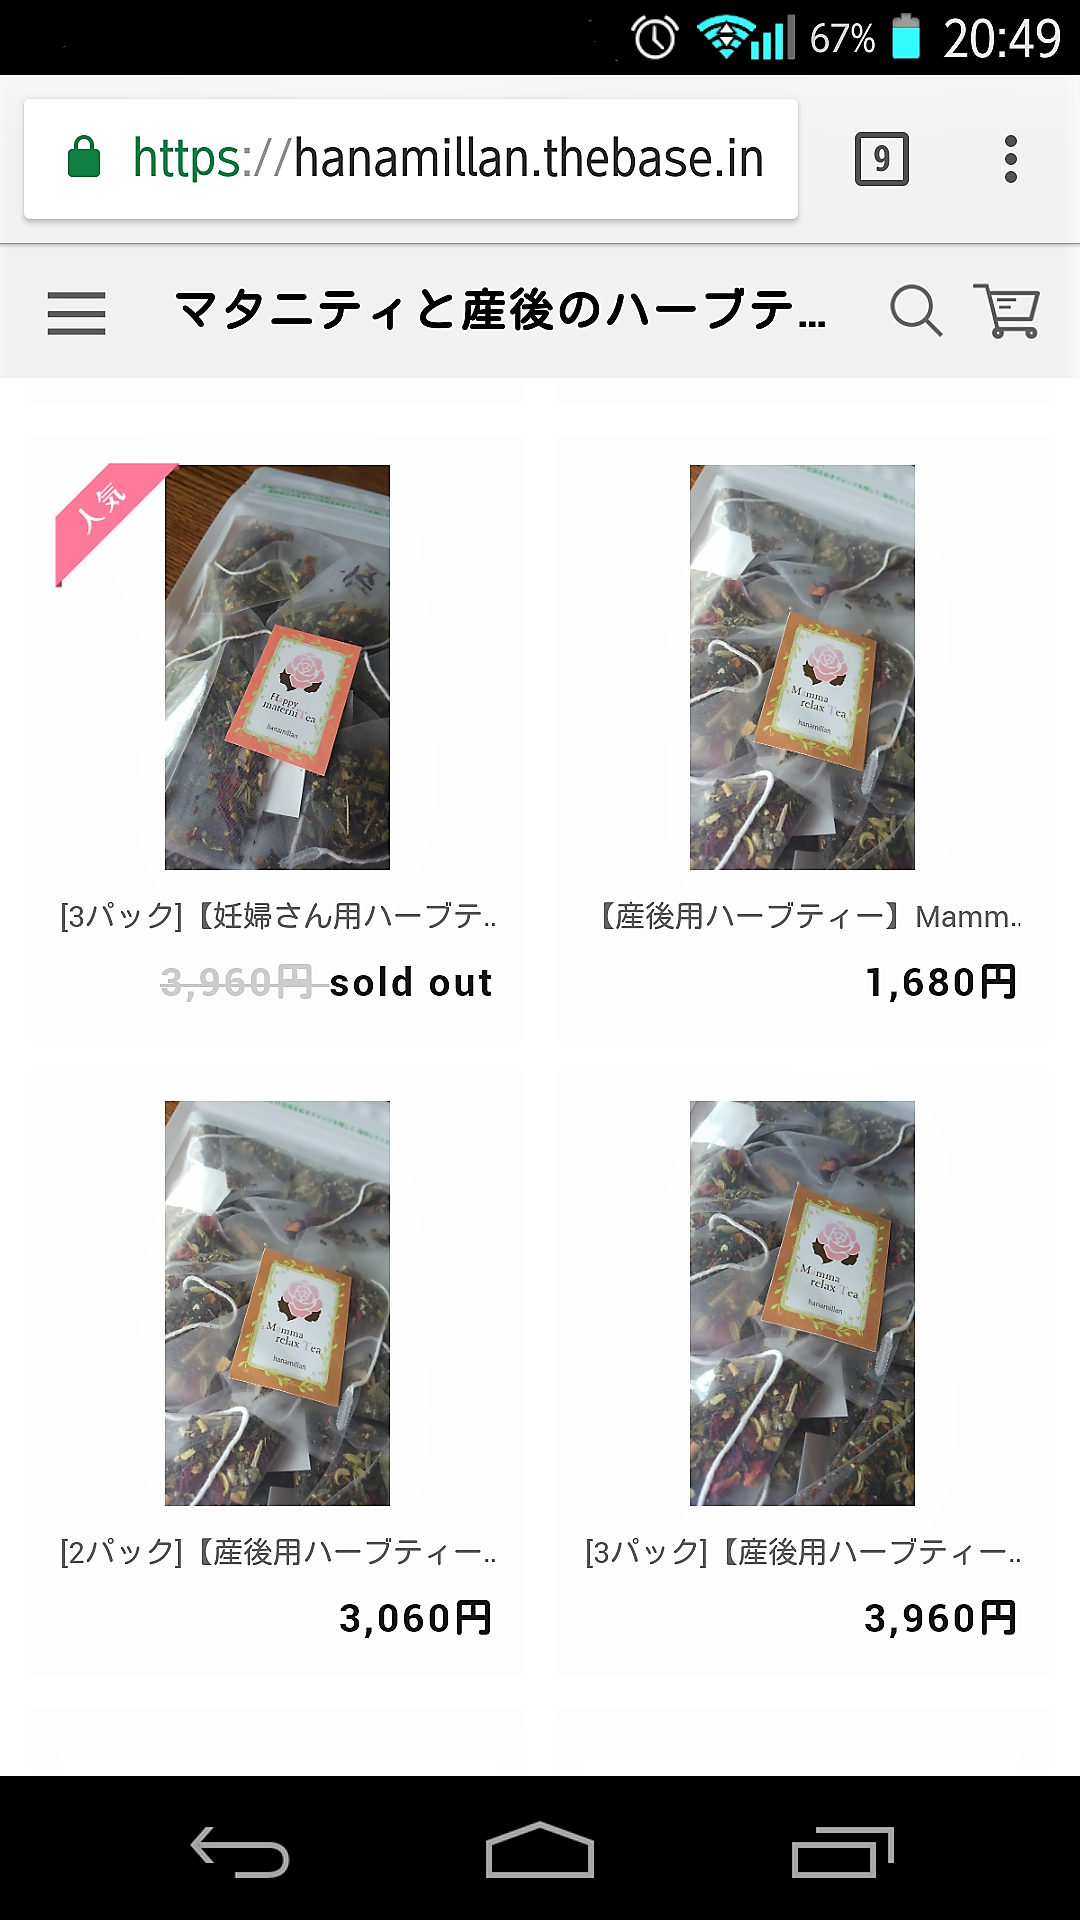 Screenshot_2017-06-09-20-49-06.png